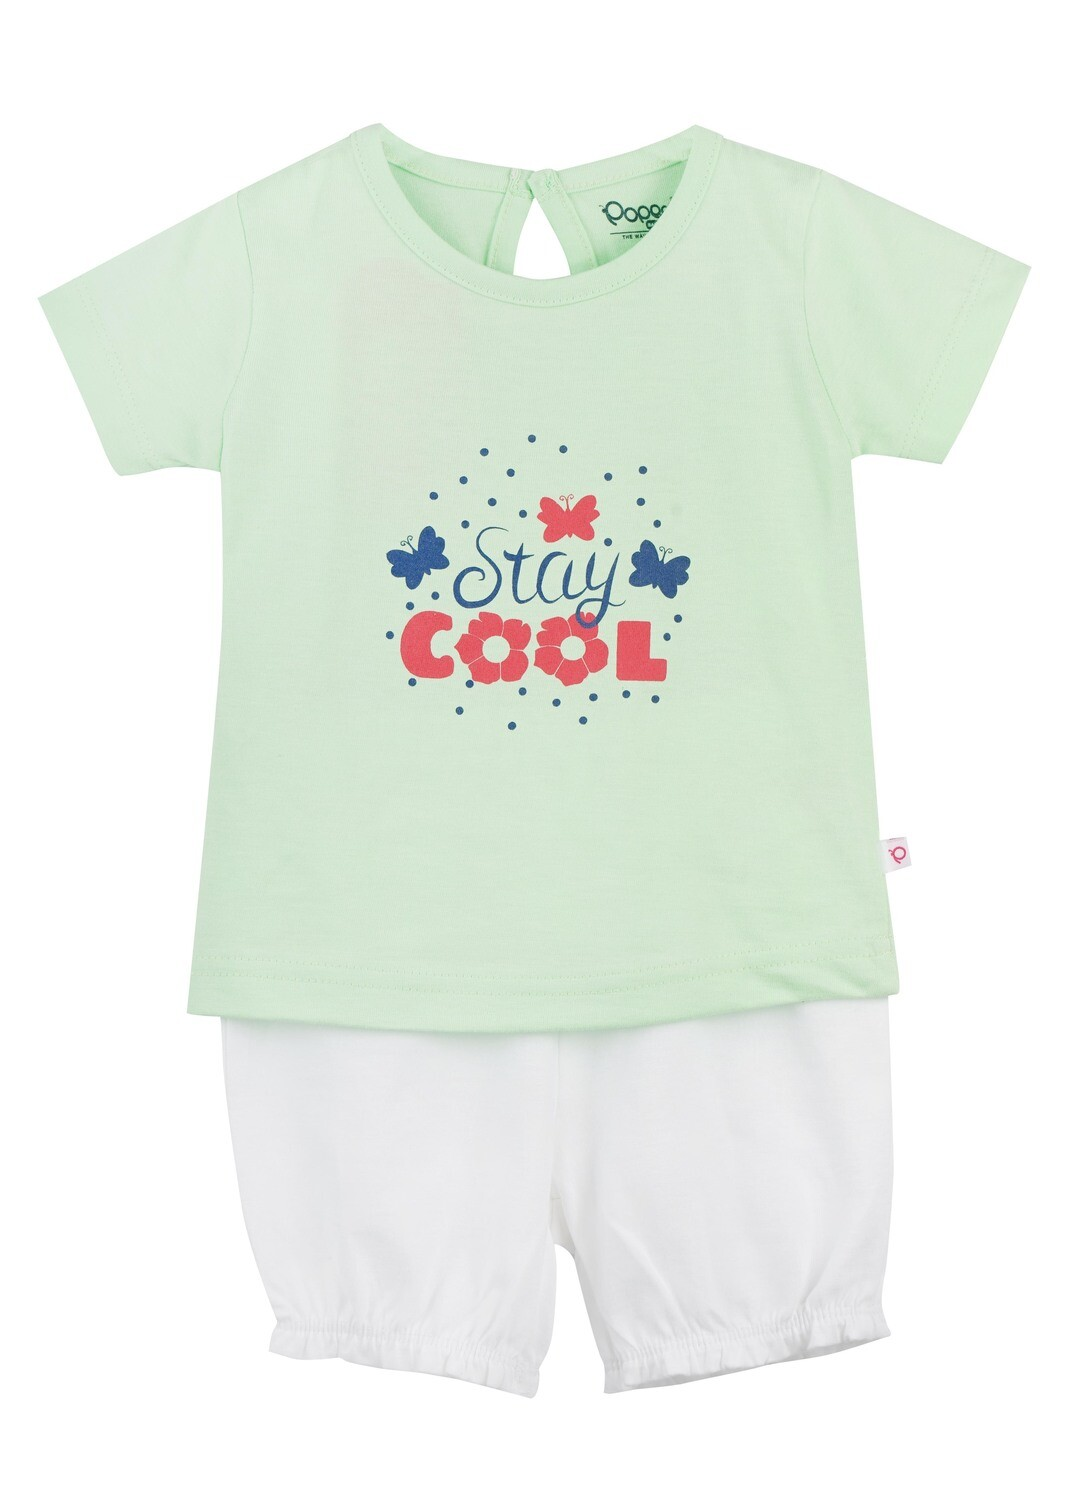 STRAWBERRY Patina Green Half sleeve Top and Panties for Baby Girls